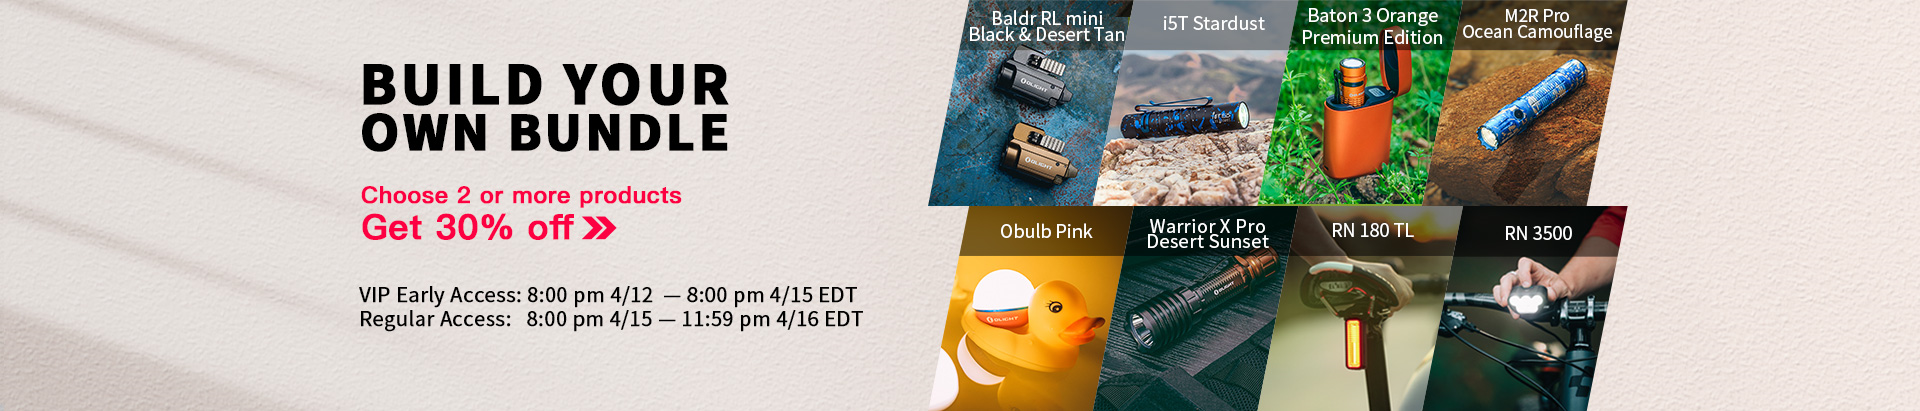 Build Your Own Bundle To Win April New Product!